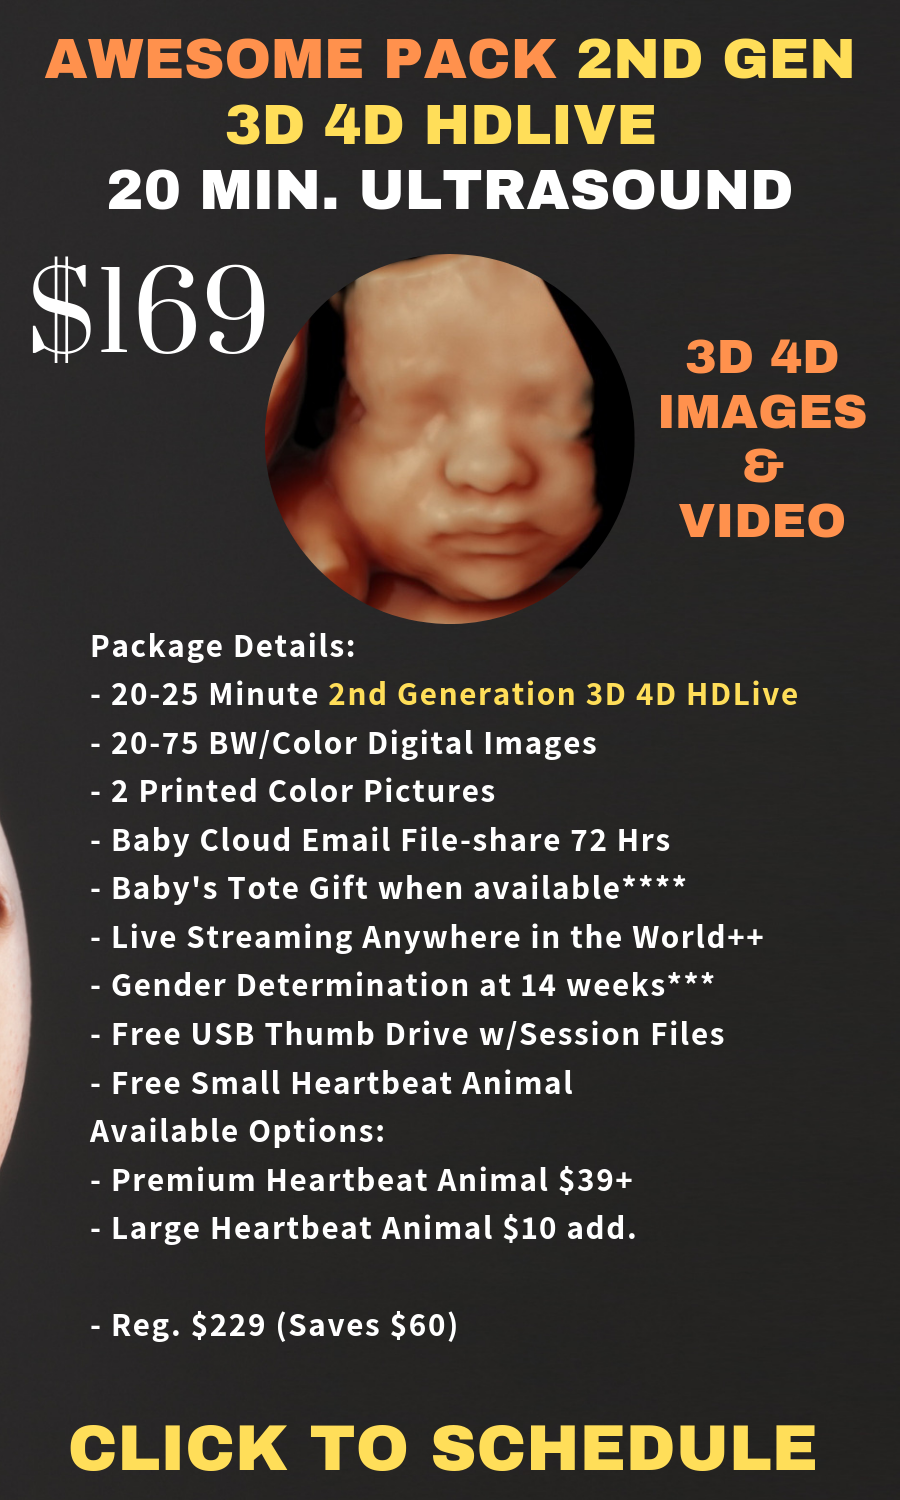 Book Awesome Package Ultrasound.png